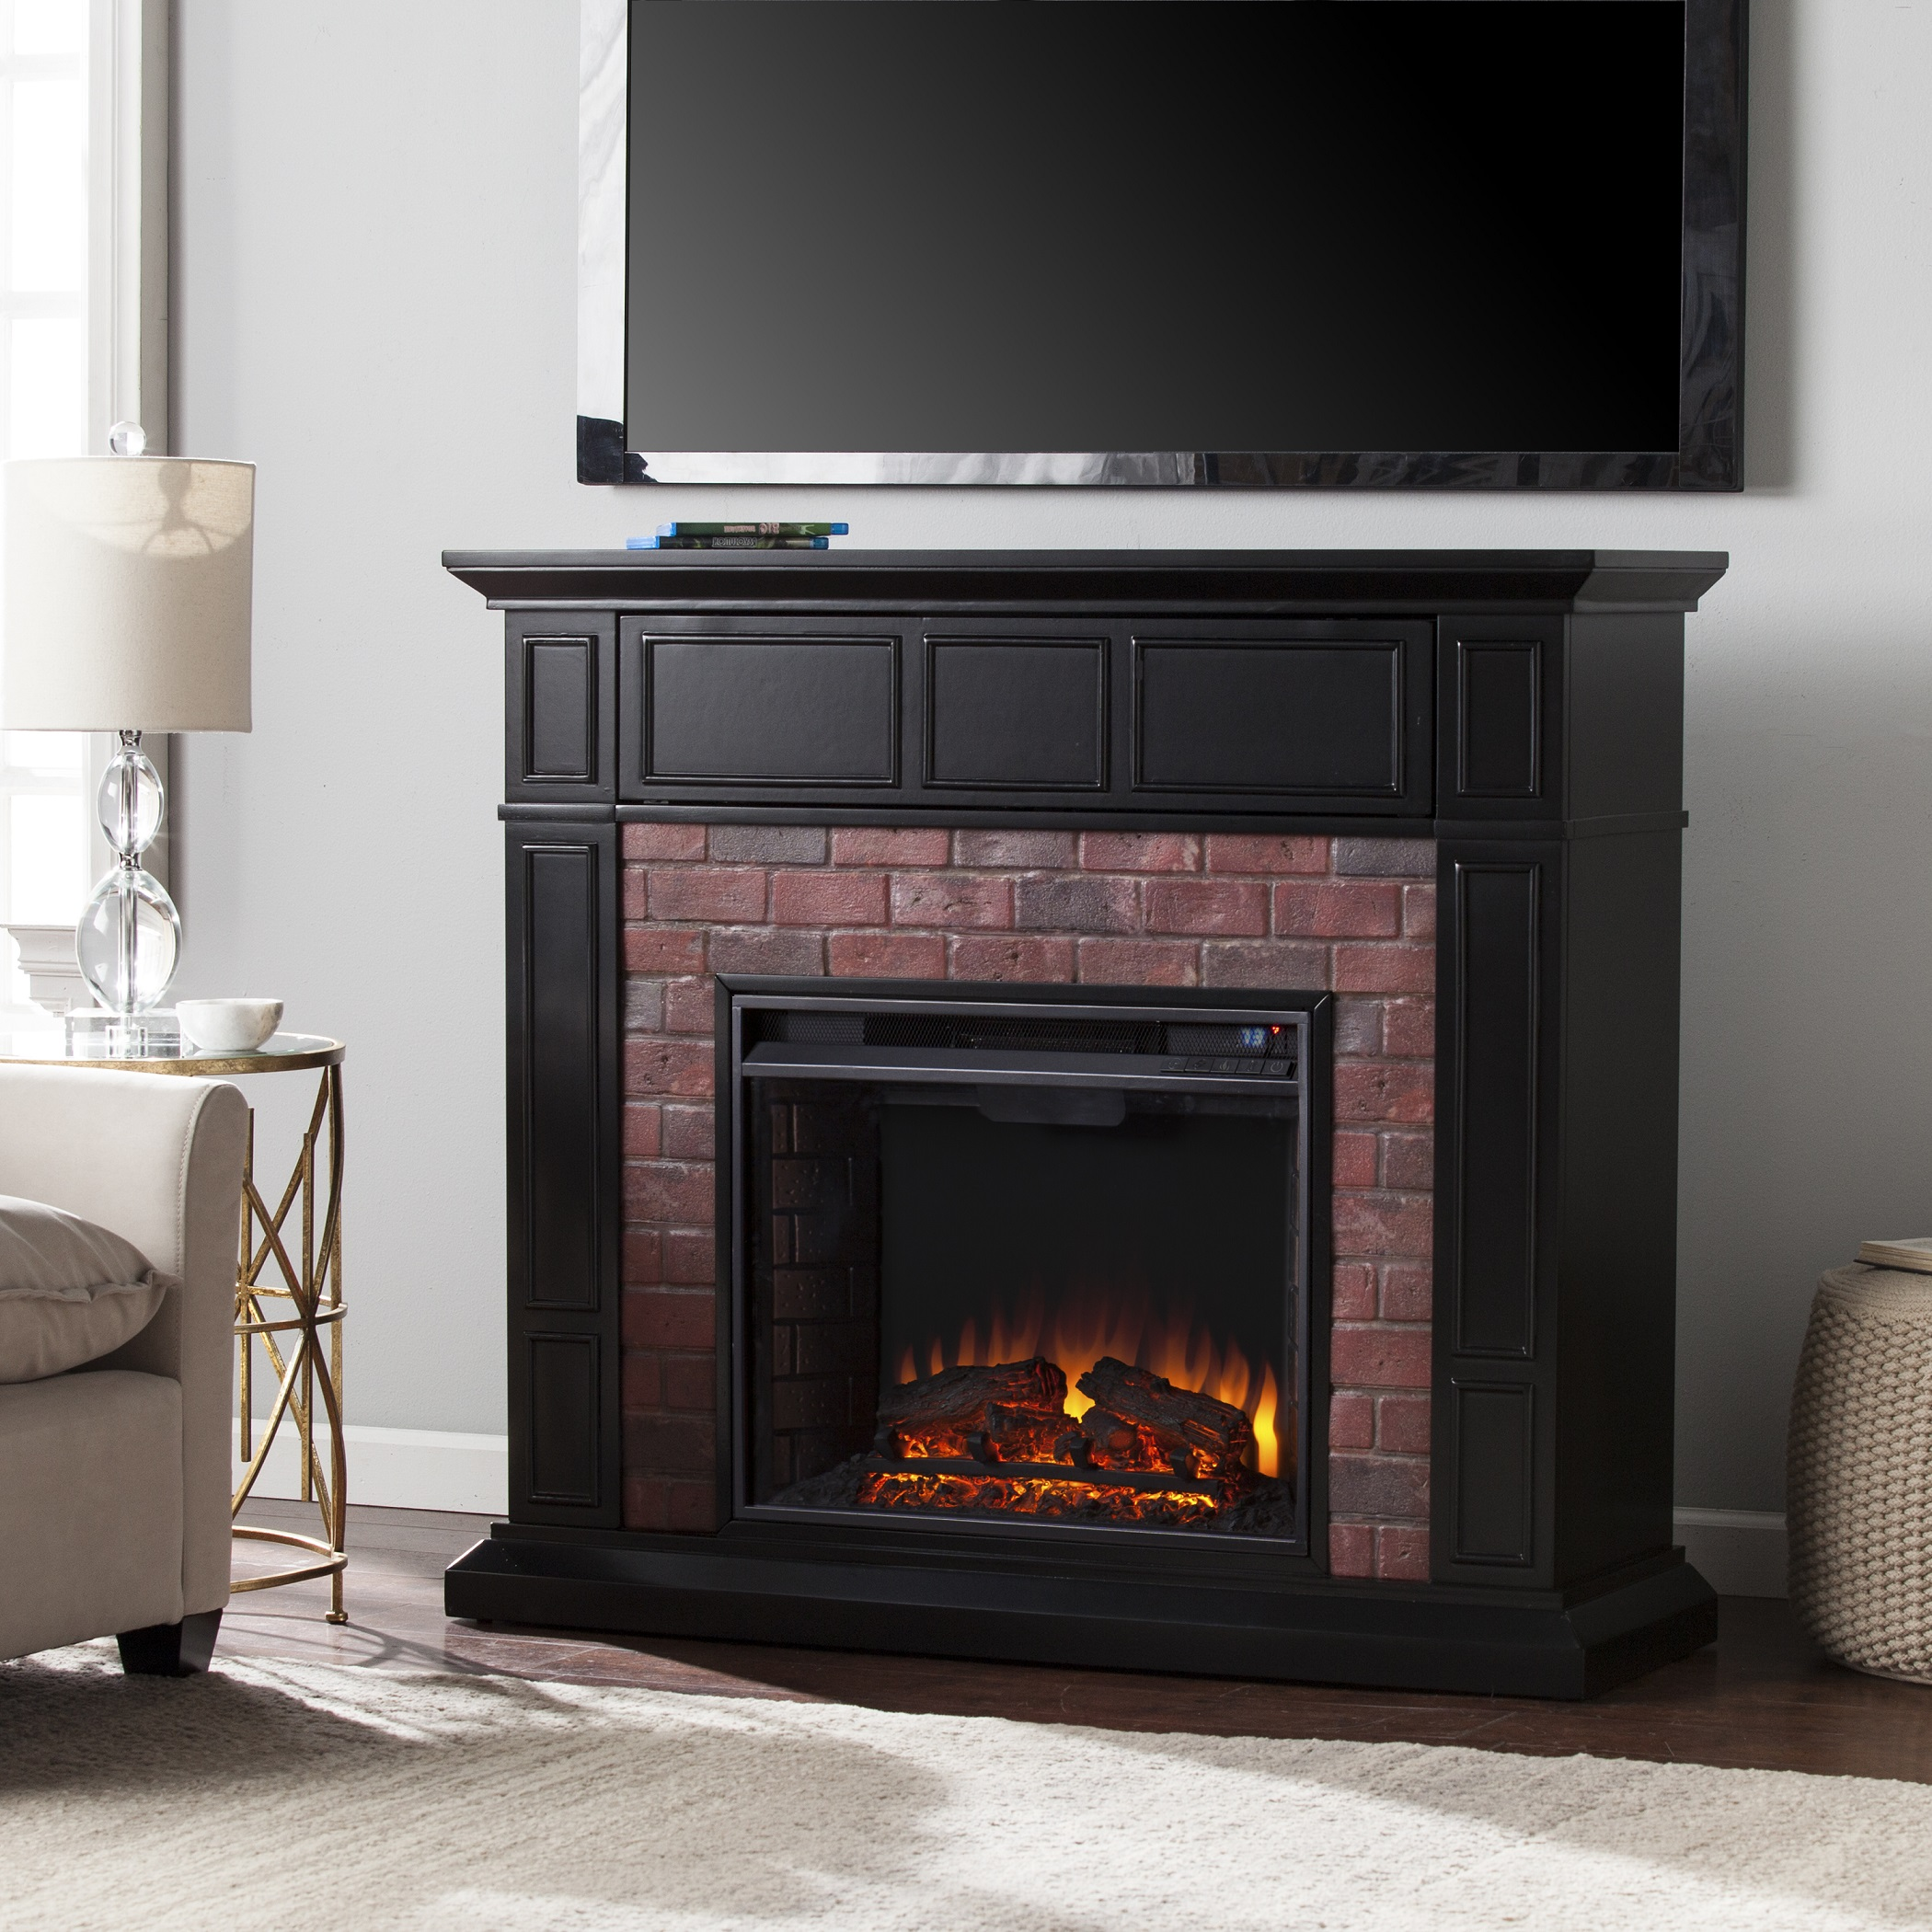 PortableFireplace.com is a specialized web botique featuring electric fireplaces